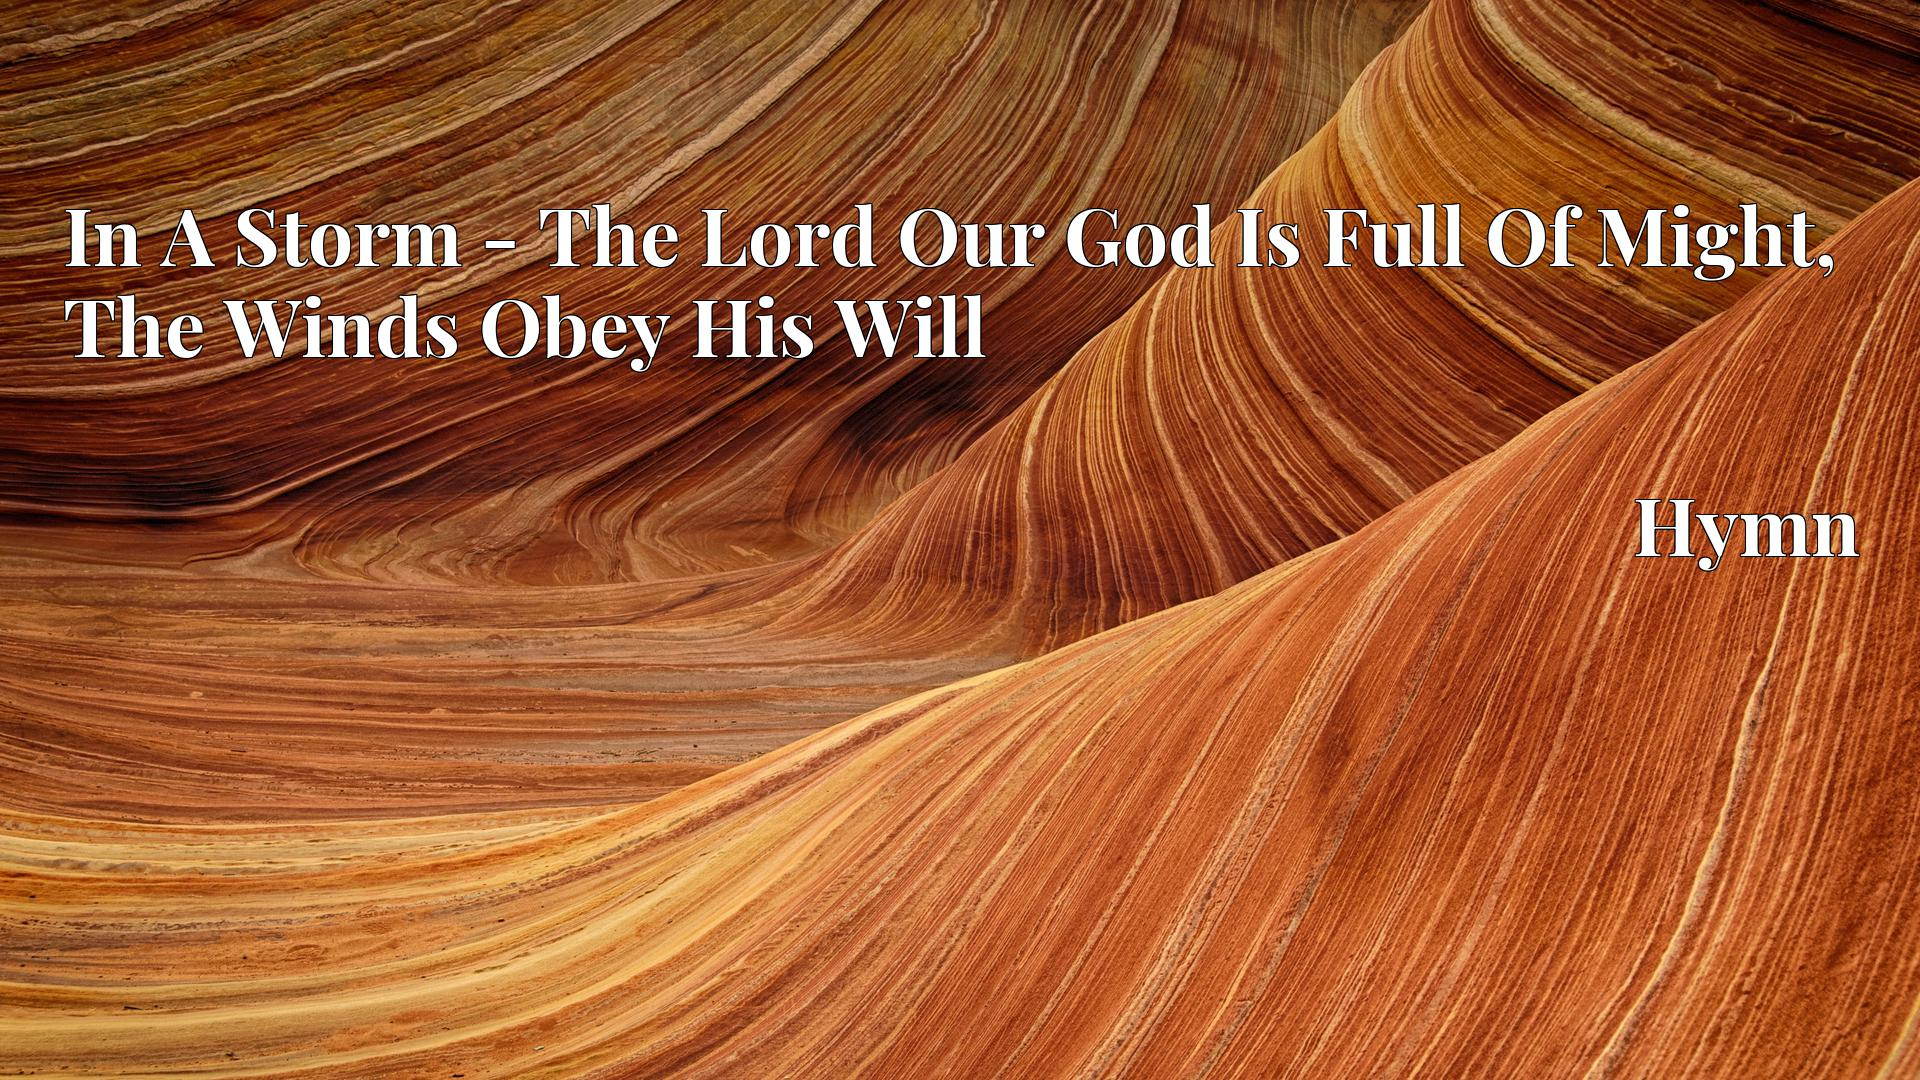 In A Storm - The Lord Our God Is Full Of Might, The Winds Obey His Will - Hymn